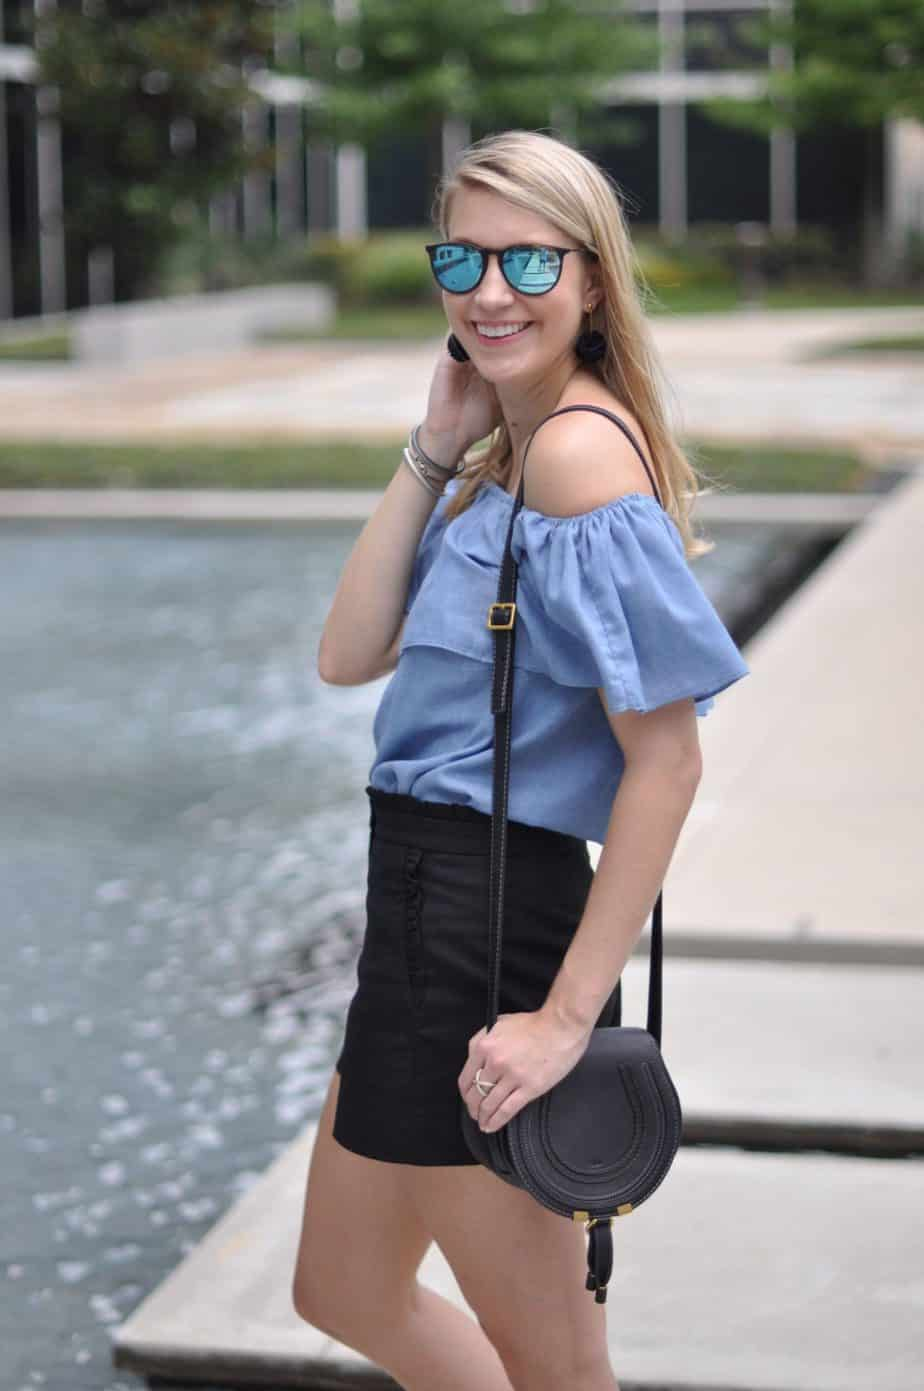 On Saturdays We Wear Shorts!